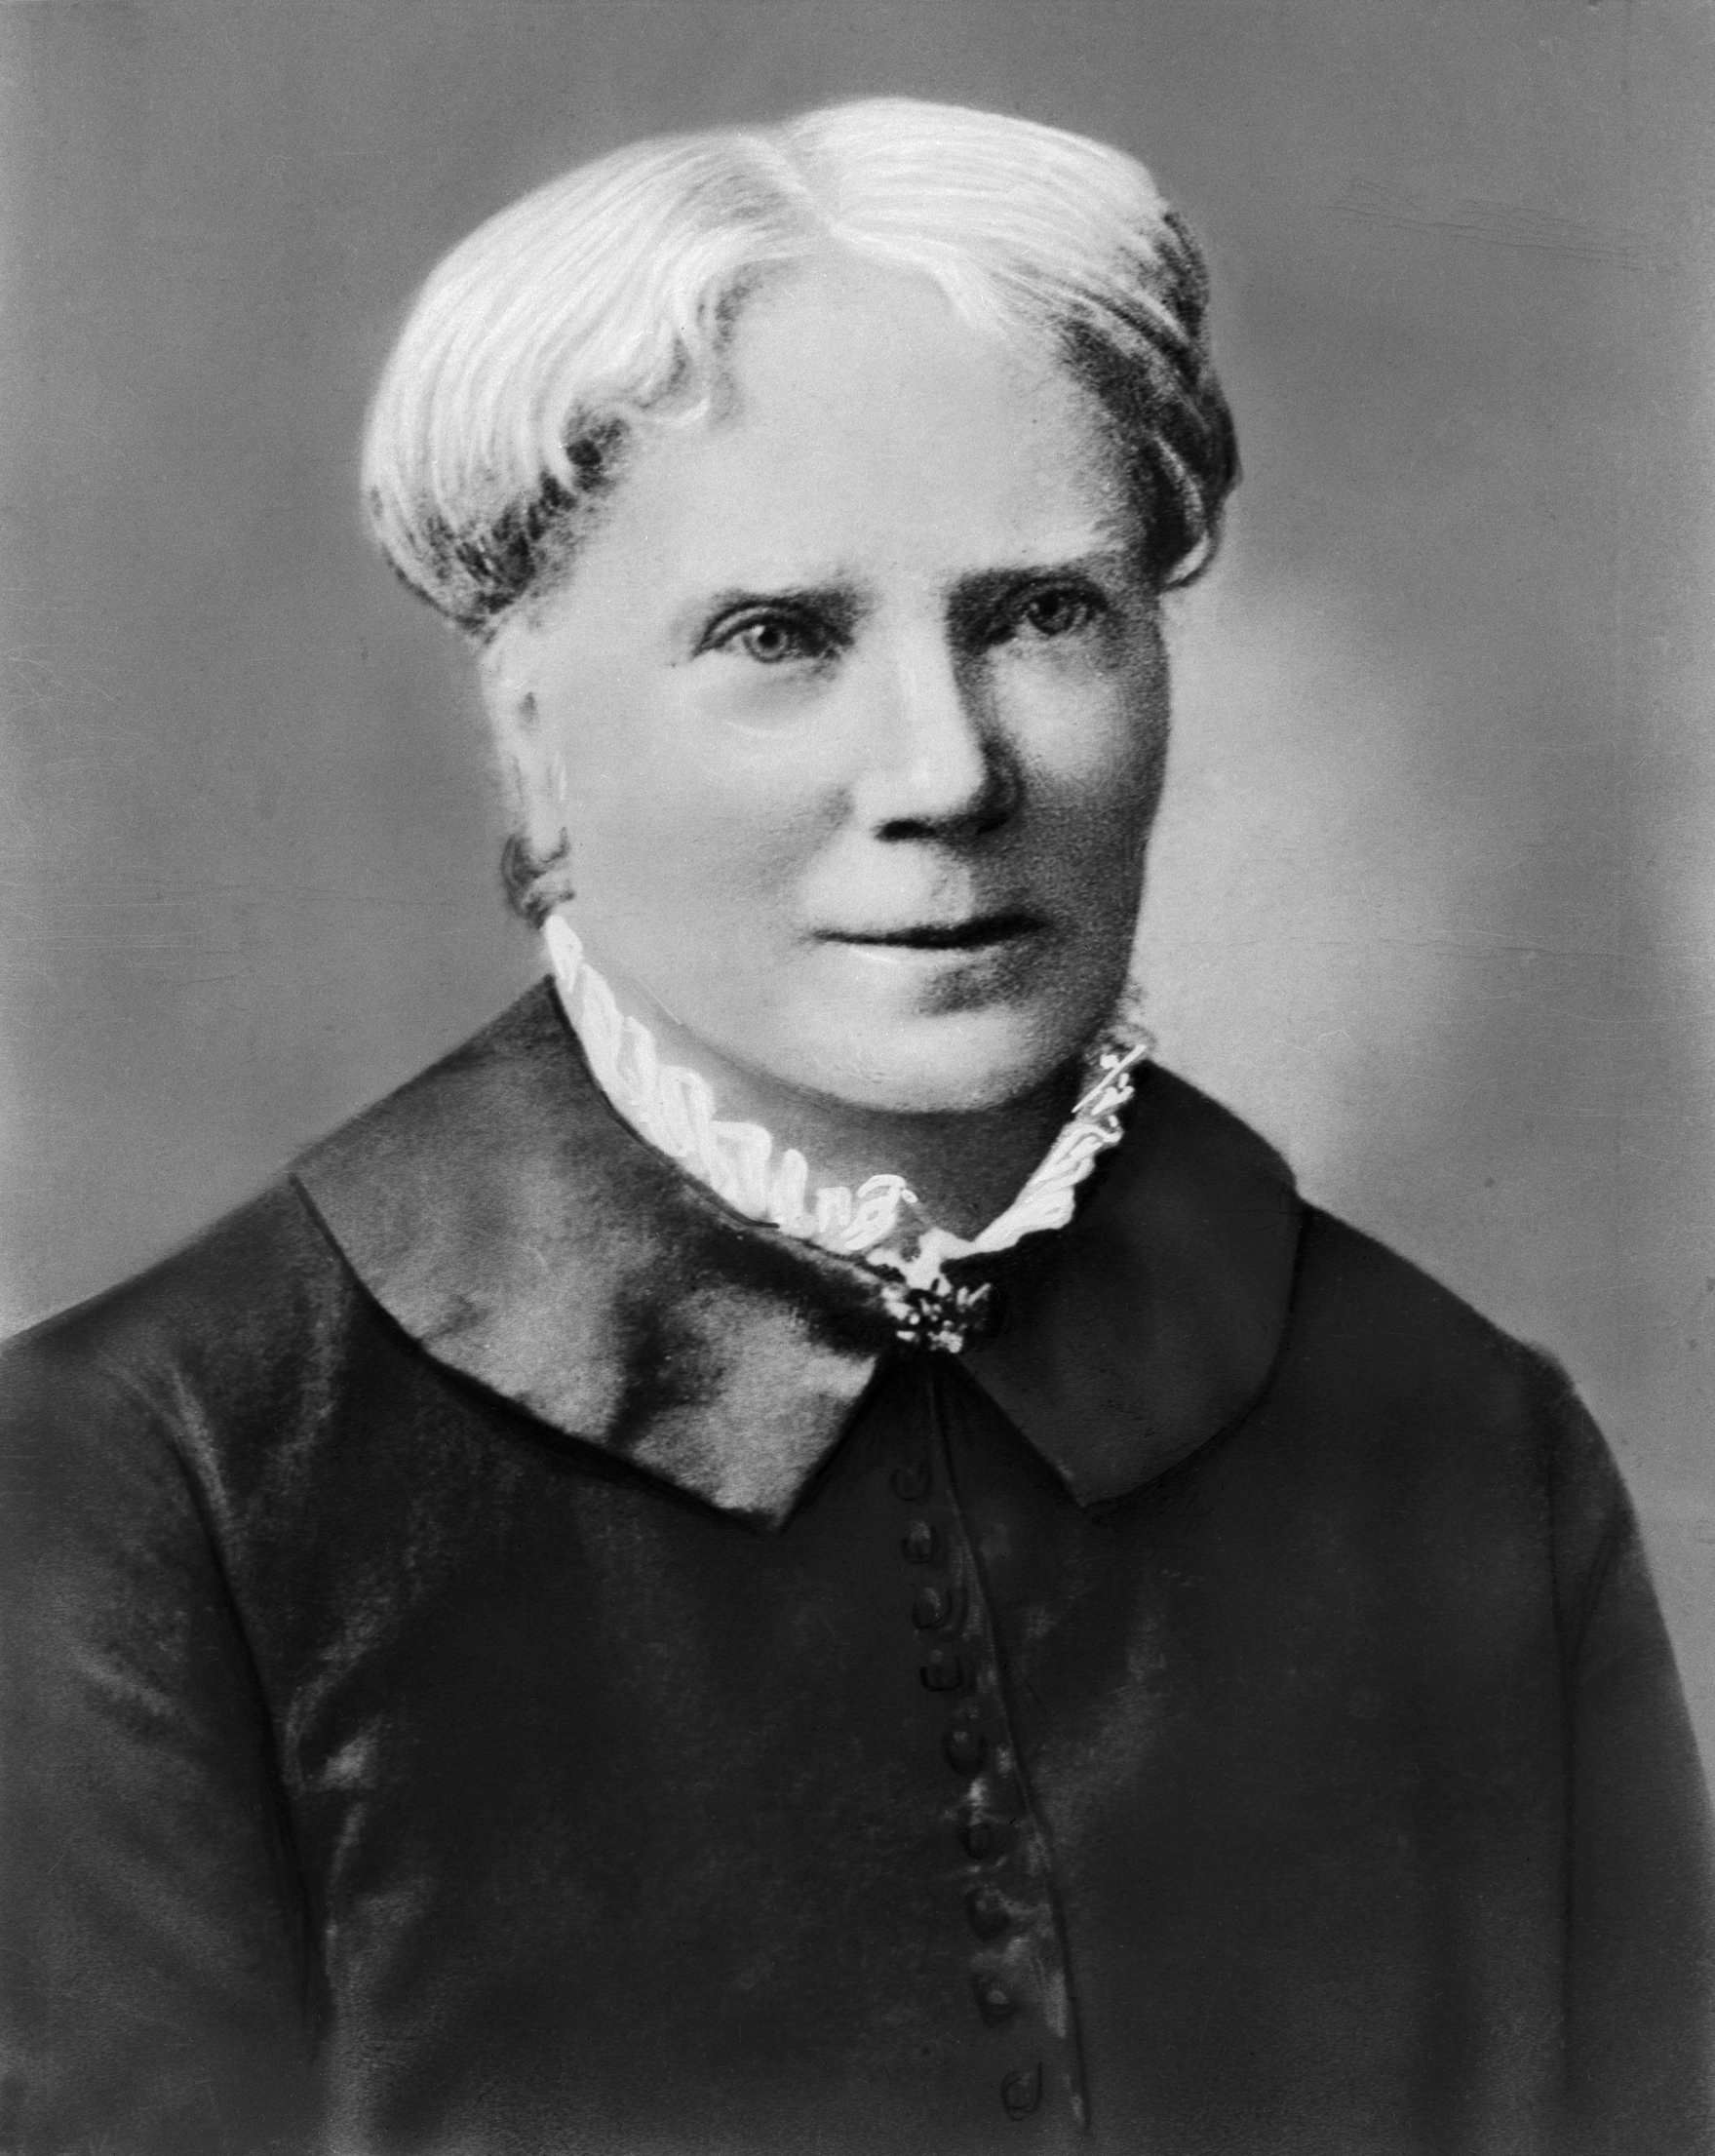 (Original Caption) Head and shoulders portrait of Elizabeth Blackwell (1821-1910), the first woman (in 1849), to receive a medical degree in the U.S. Undated photograph.